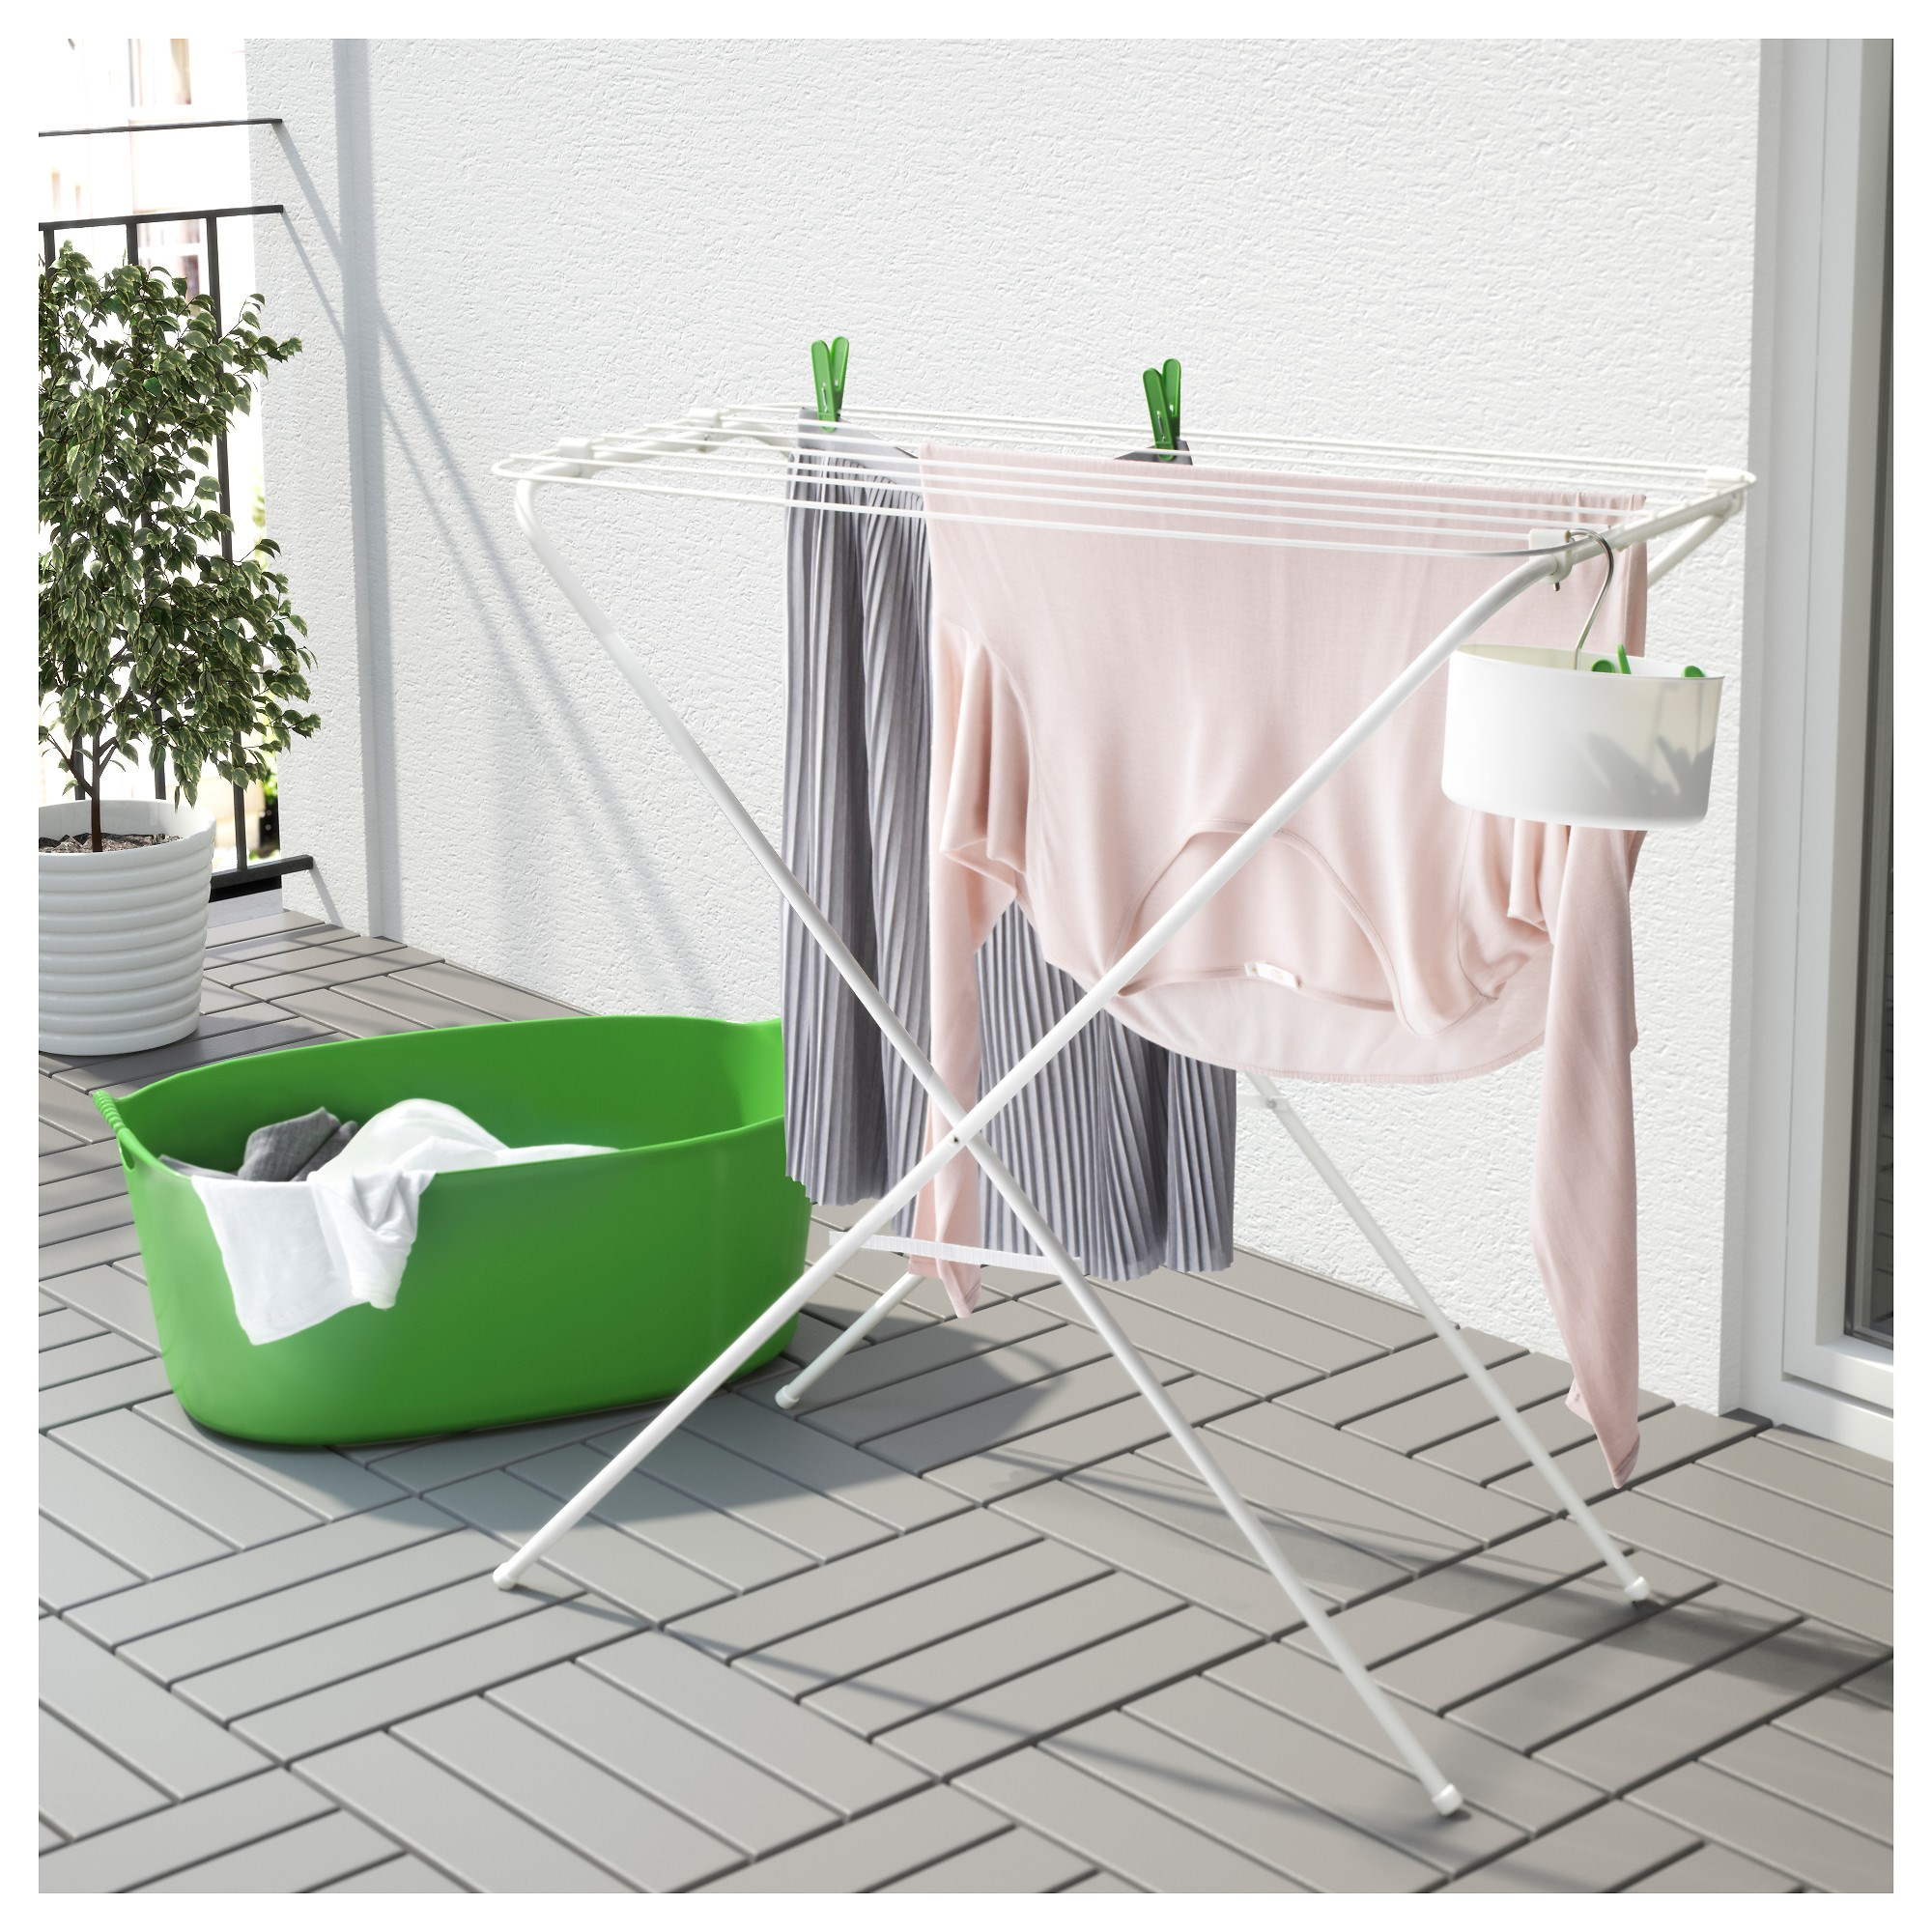 Jall Drying Rack White 79x40x82 Cm Ikea Storage Solutions